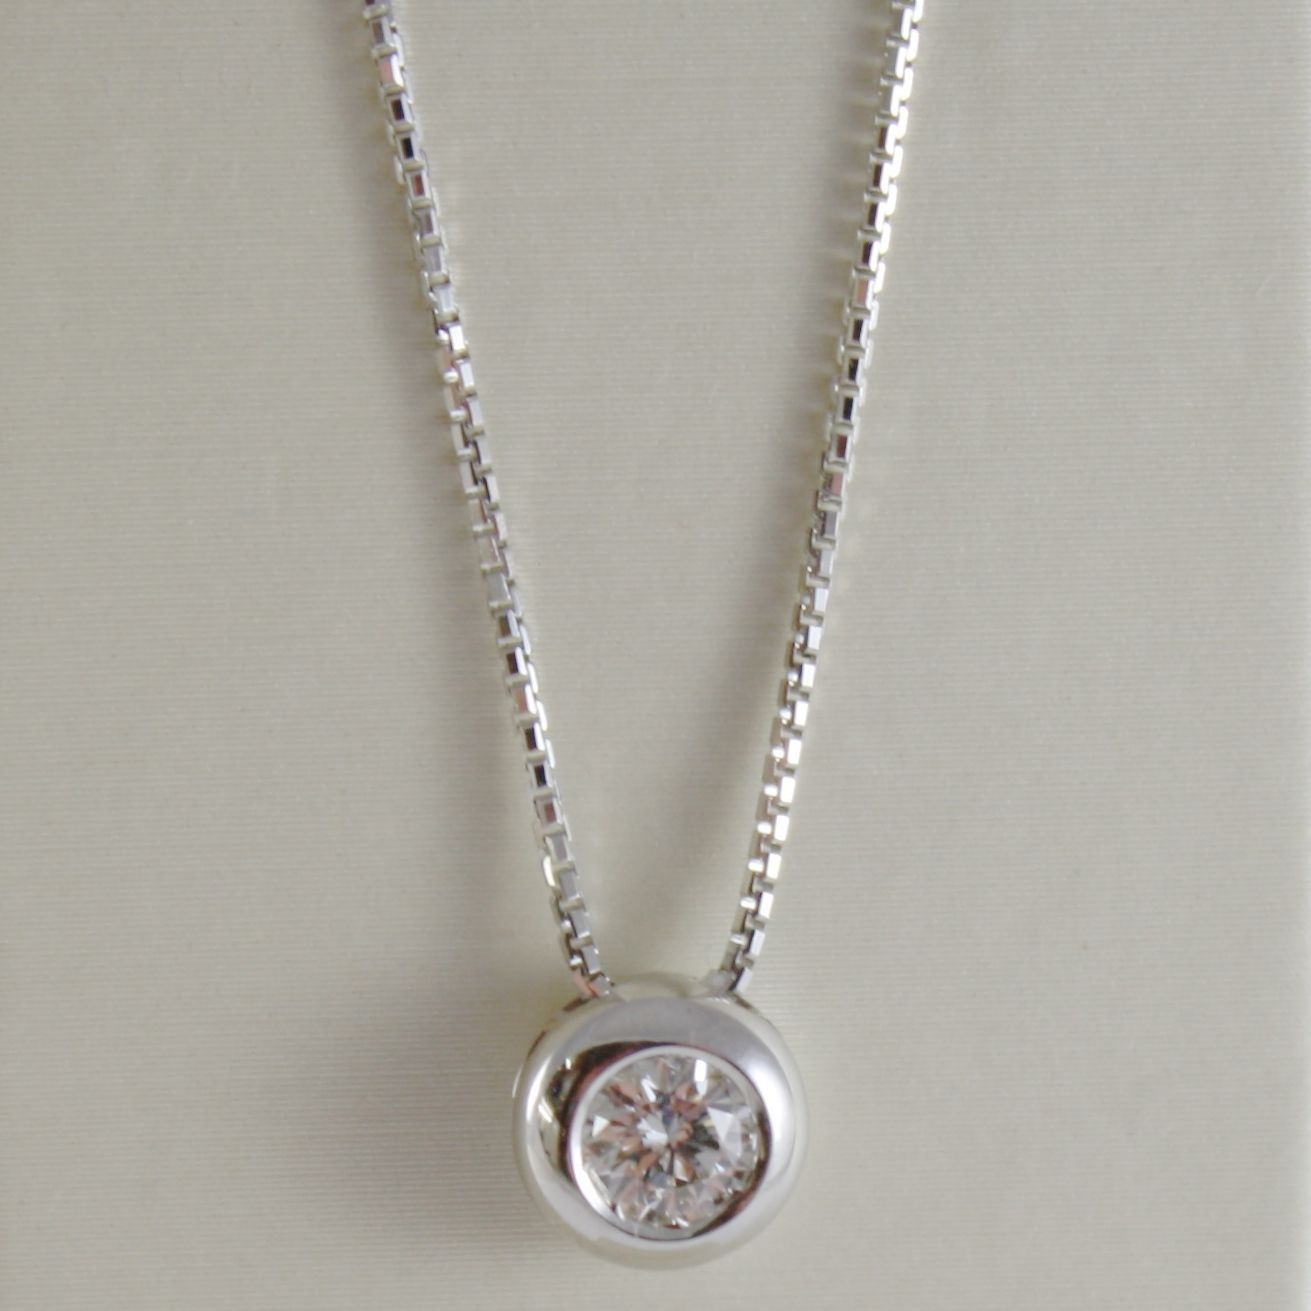 18K WHITE GOLD NECKLACE WITH DIAMOND 0.25 CARATS, VENETIAN CHAIN MADE IN ITALY